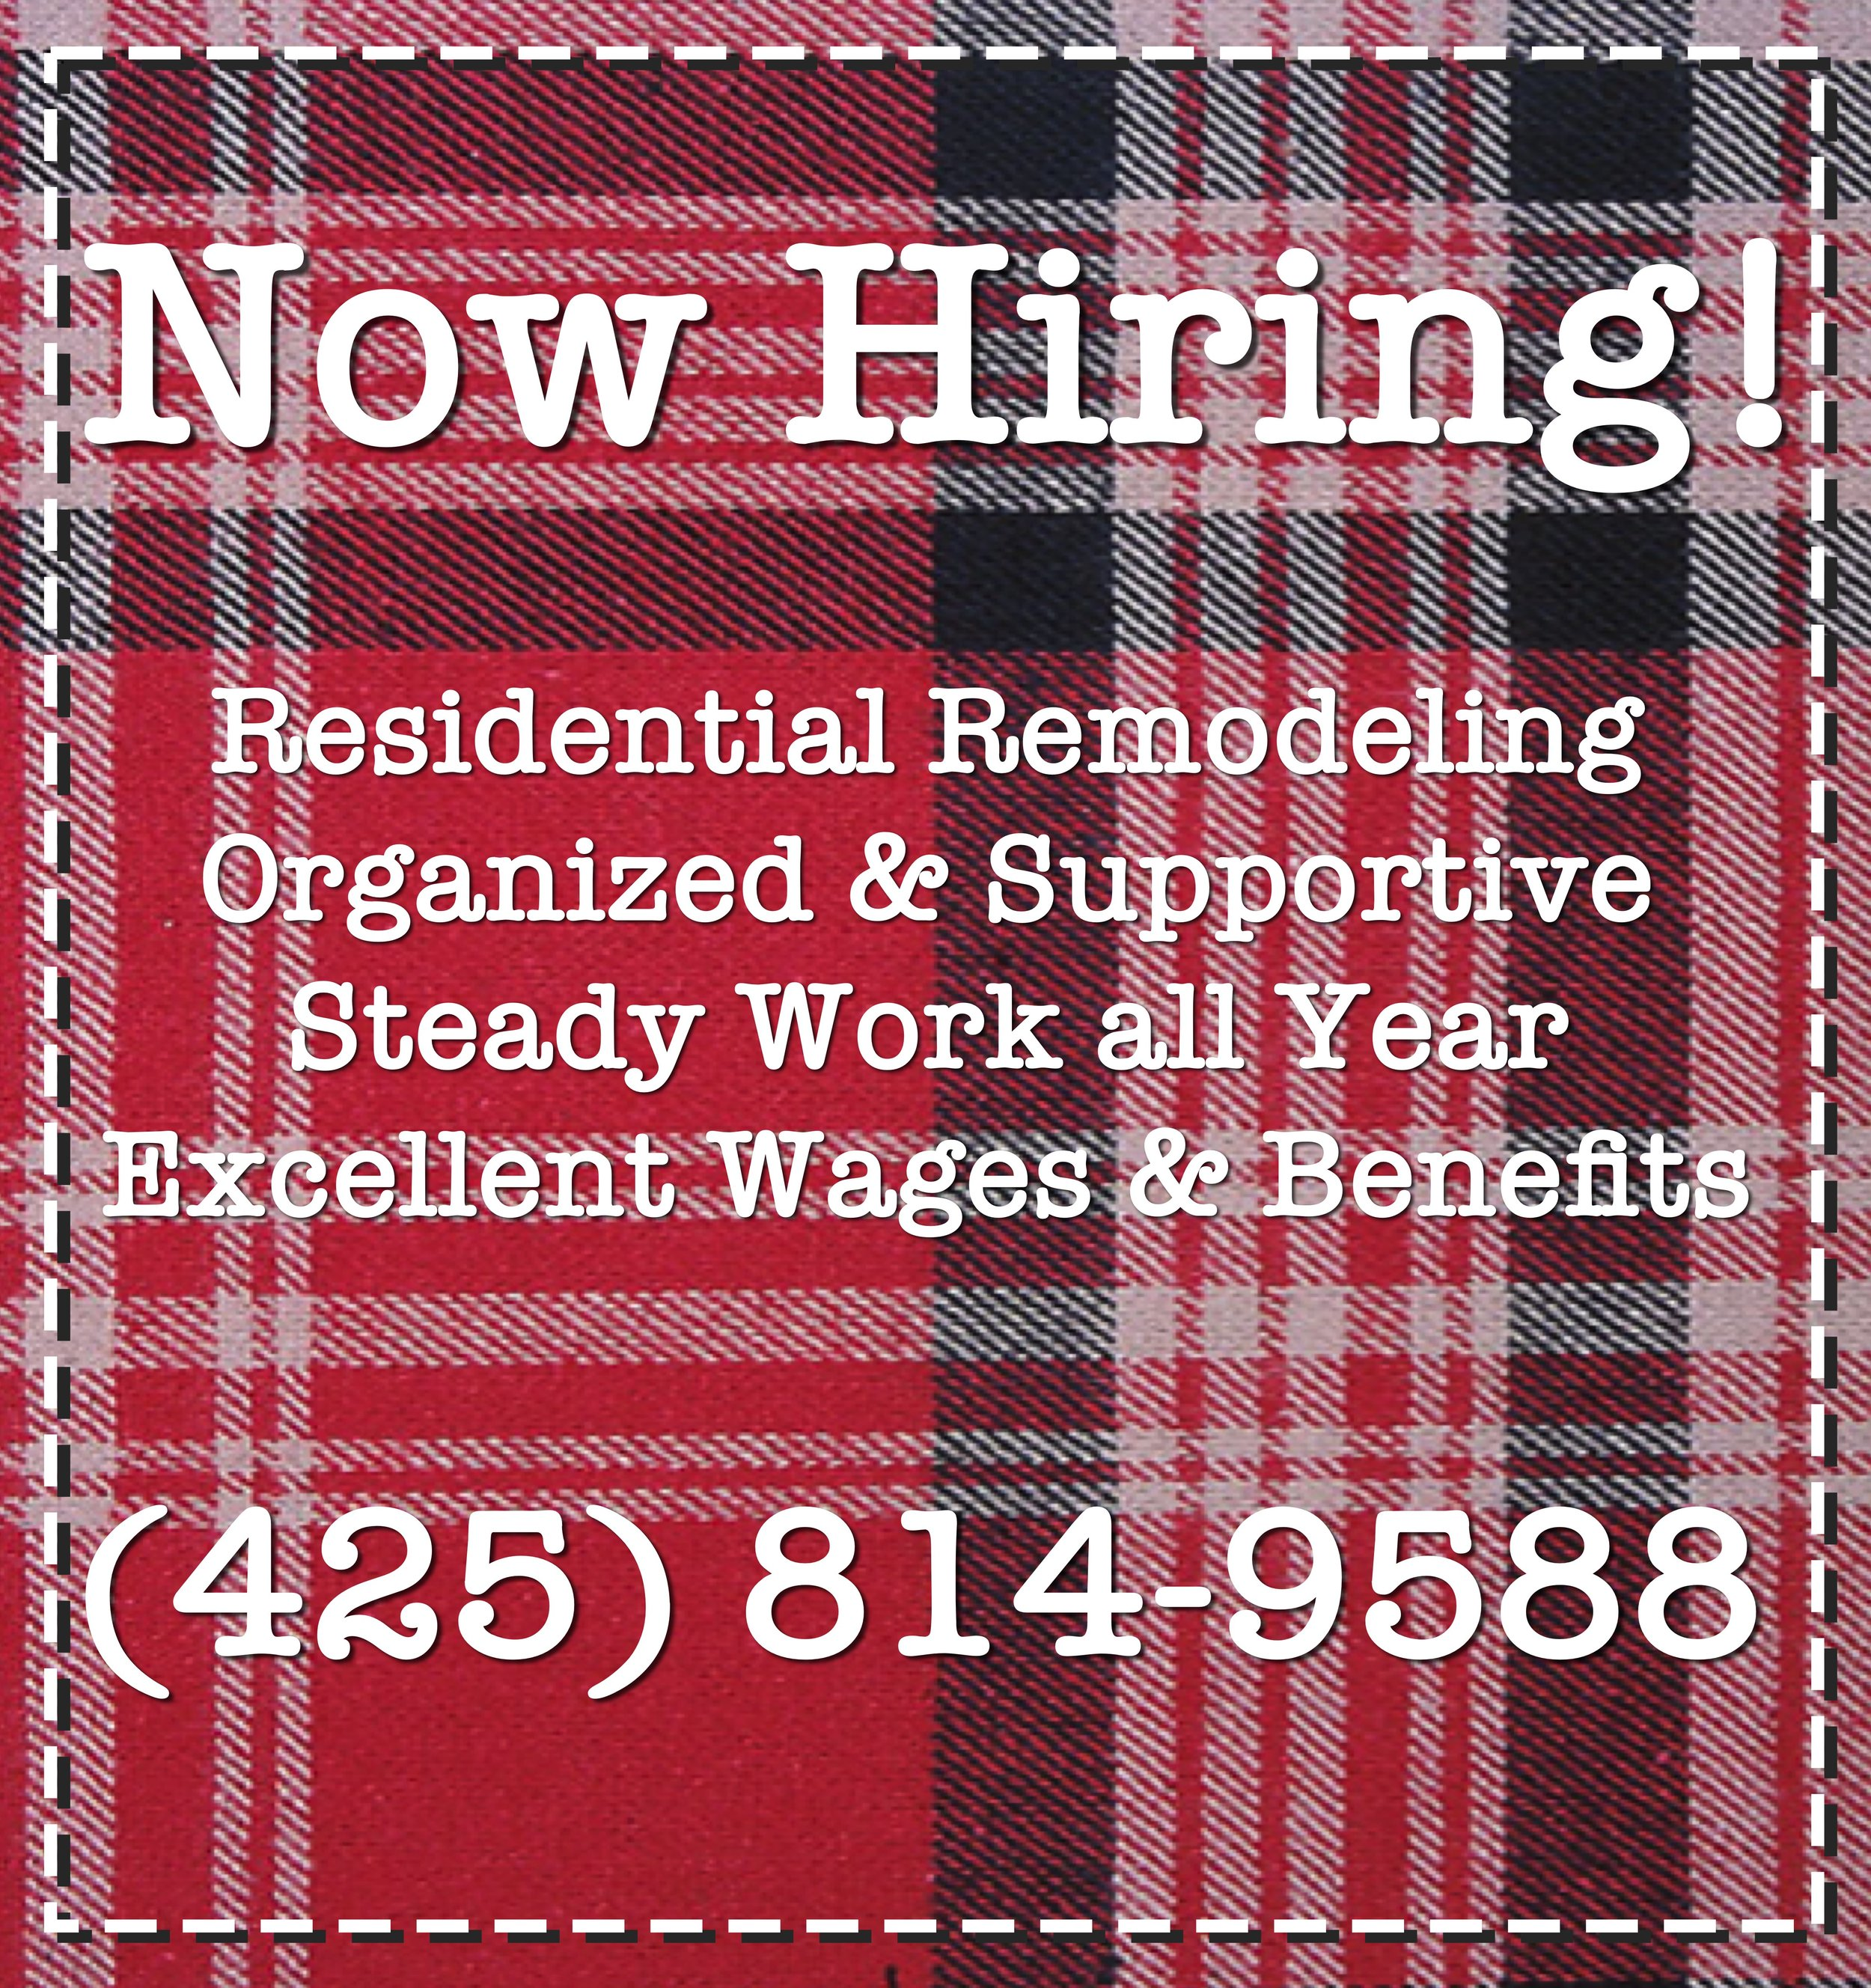 Now Hiring Plaid 2.jpeg